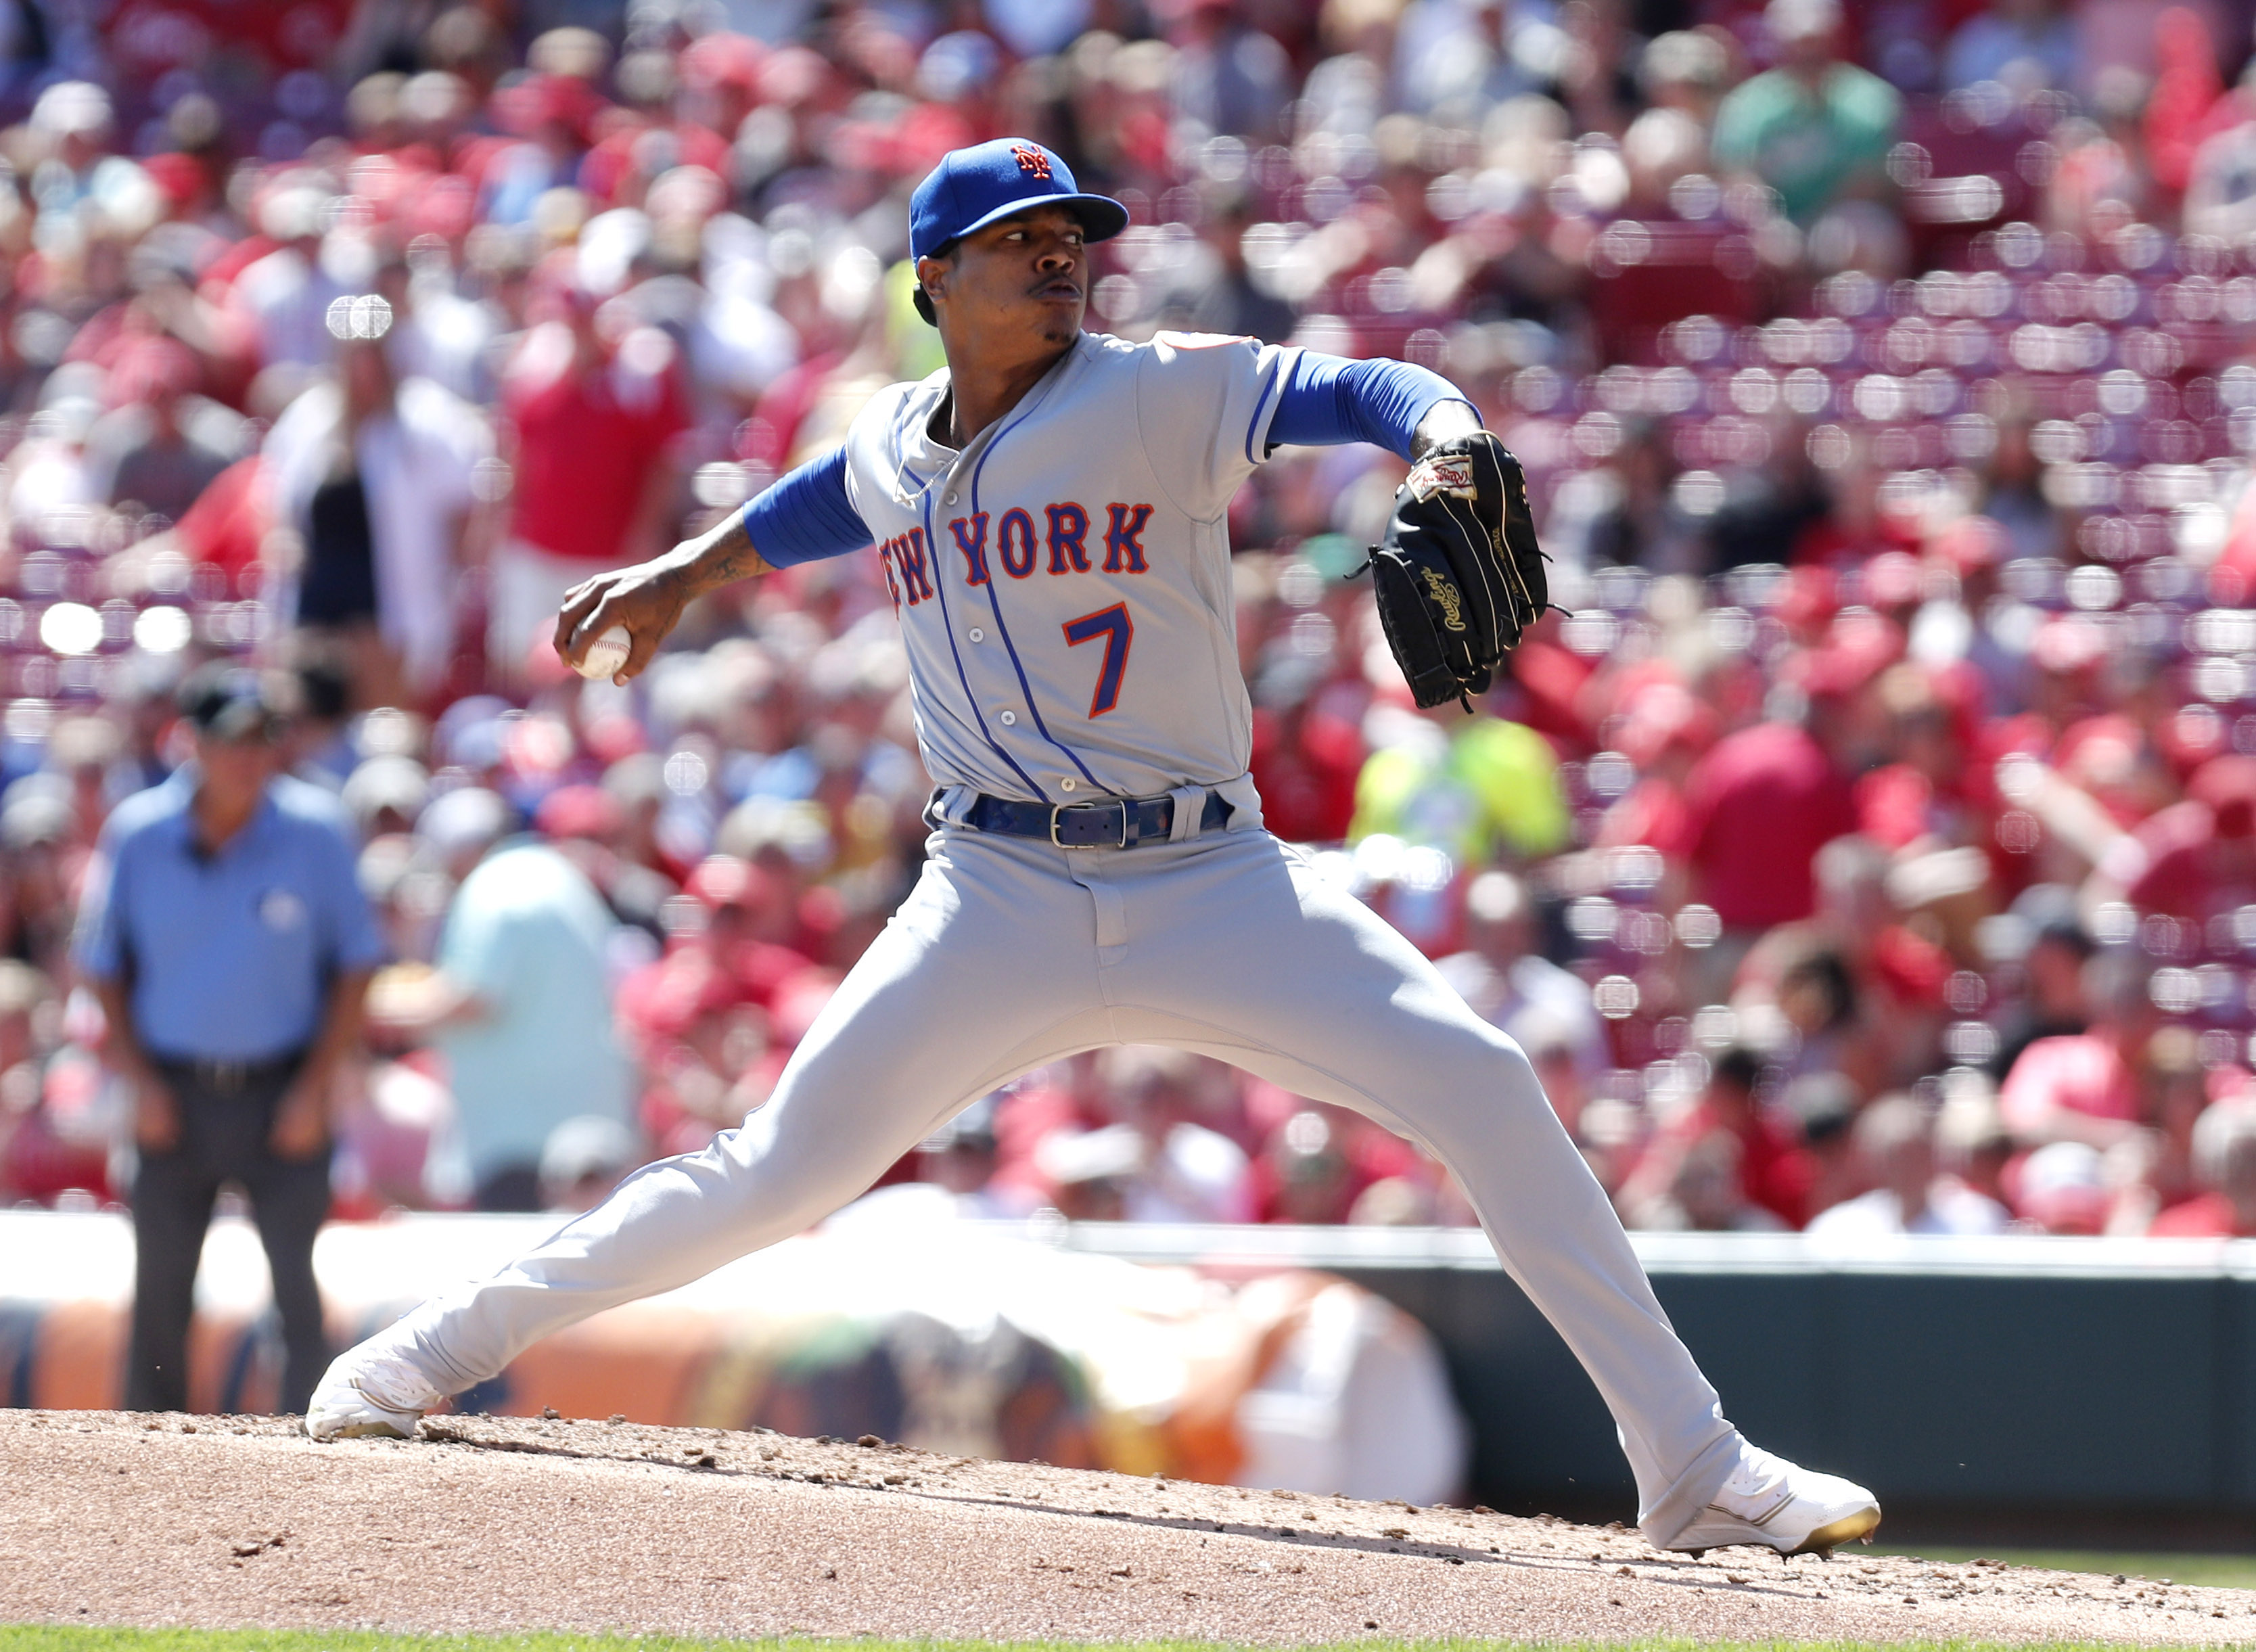 7/21/21 Afternoon Game Preview: New York Mets at Cincinnati Reds